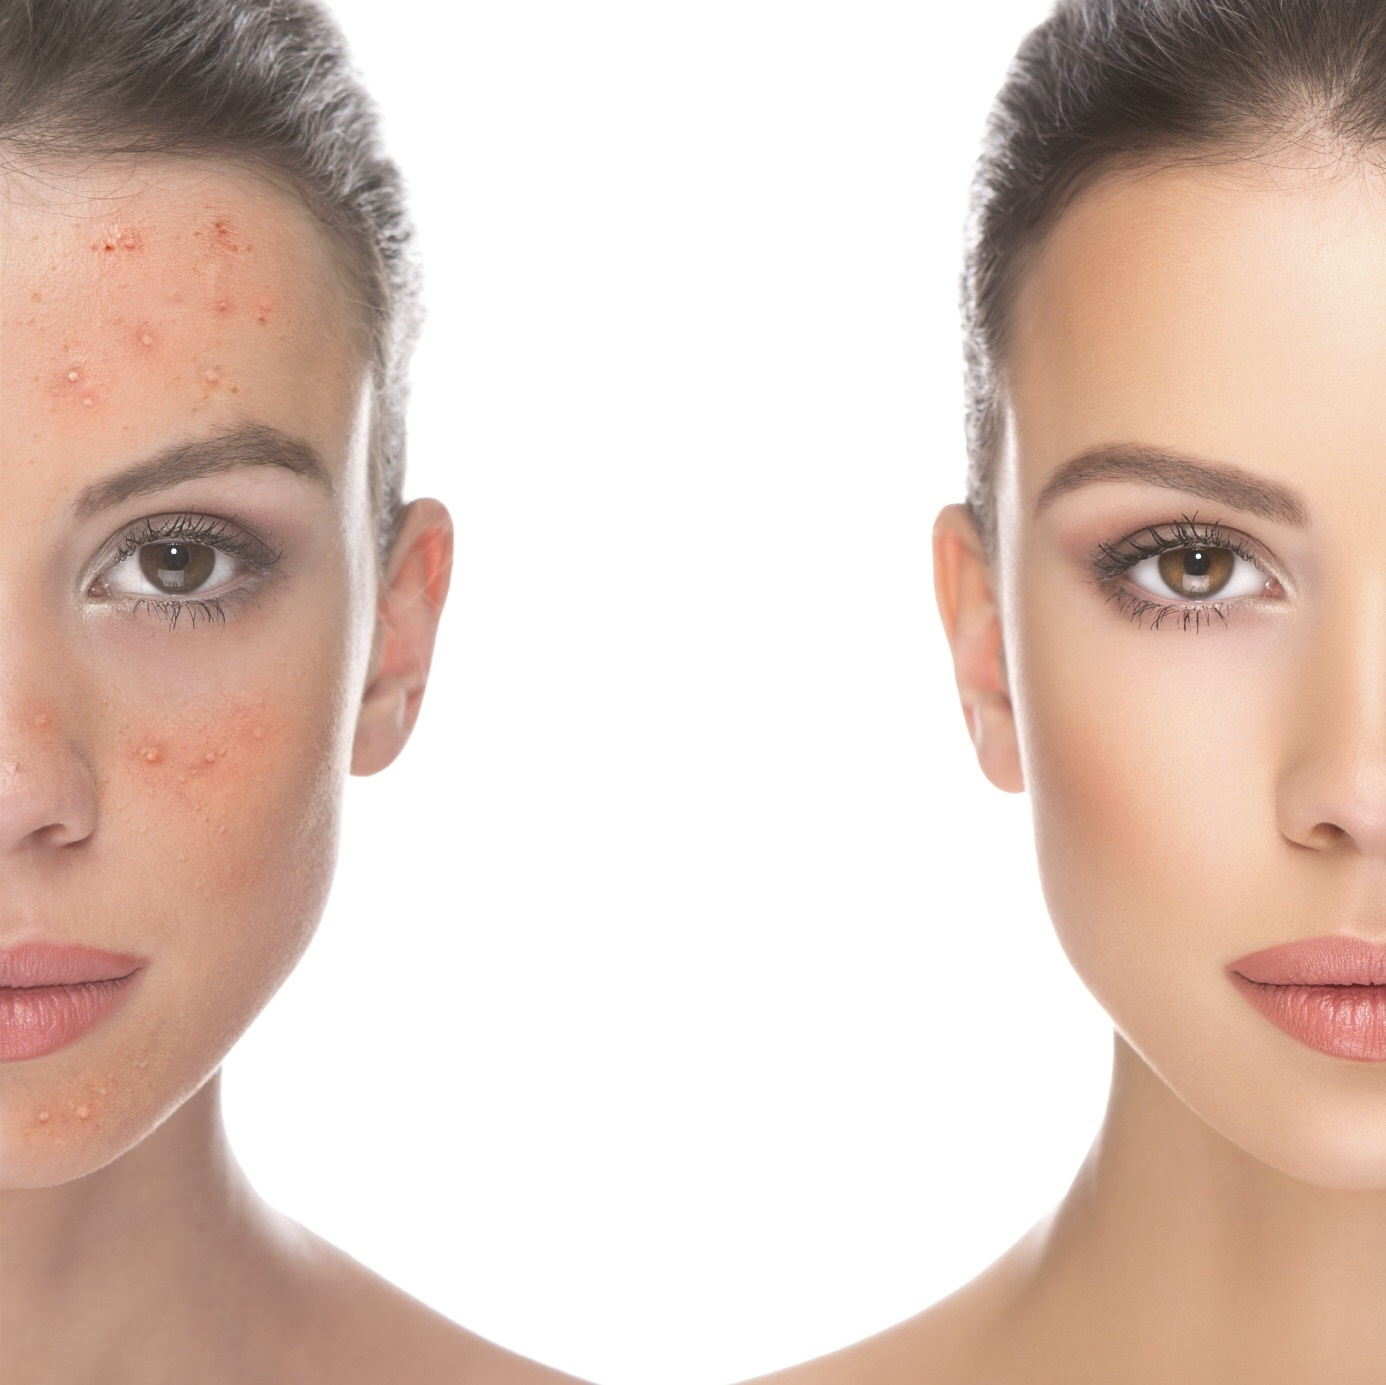 acne before and after